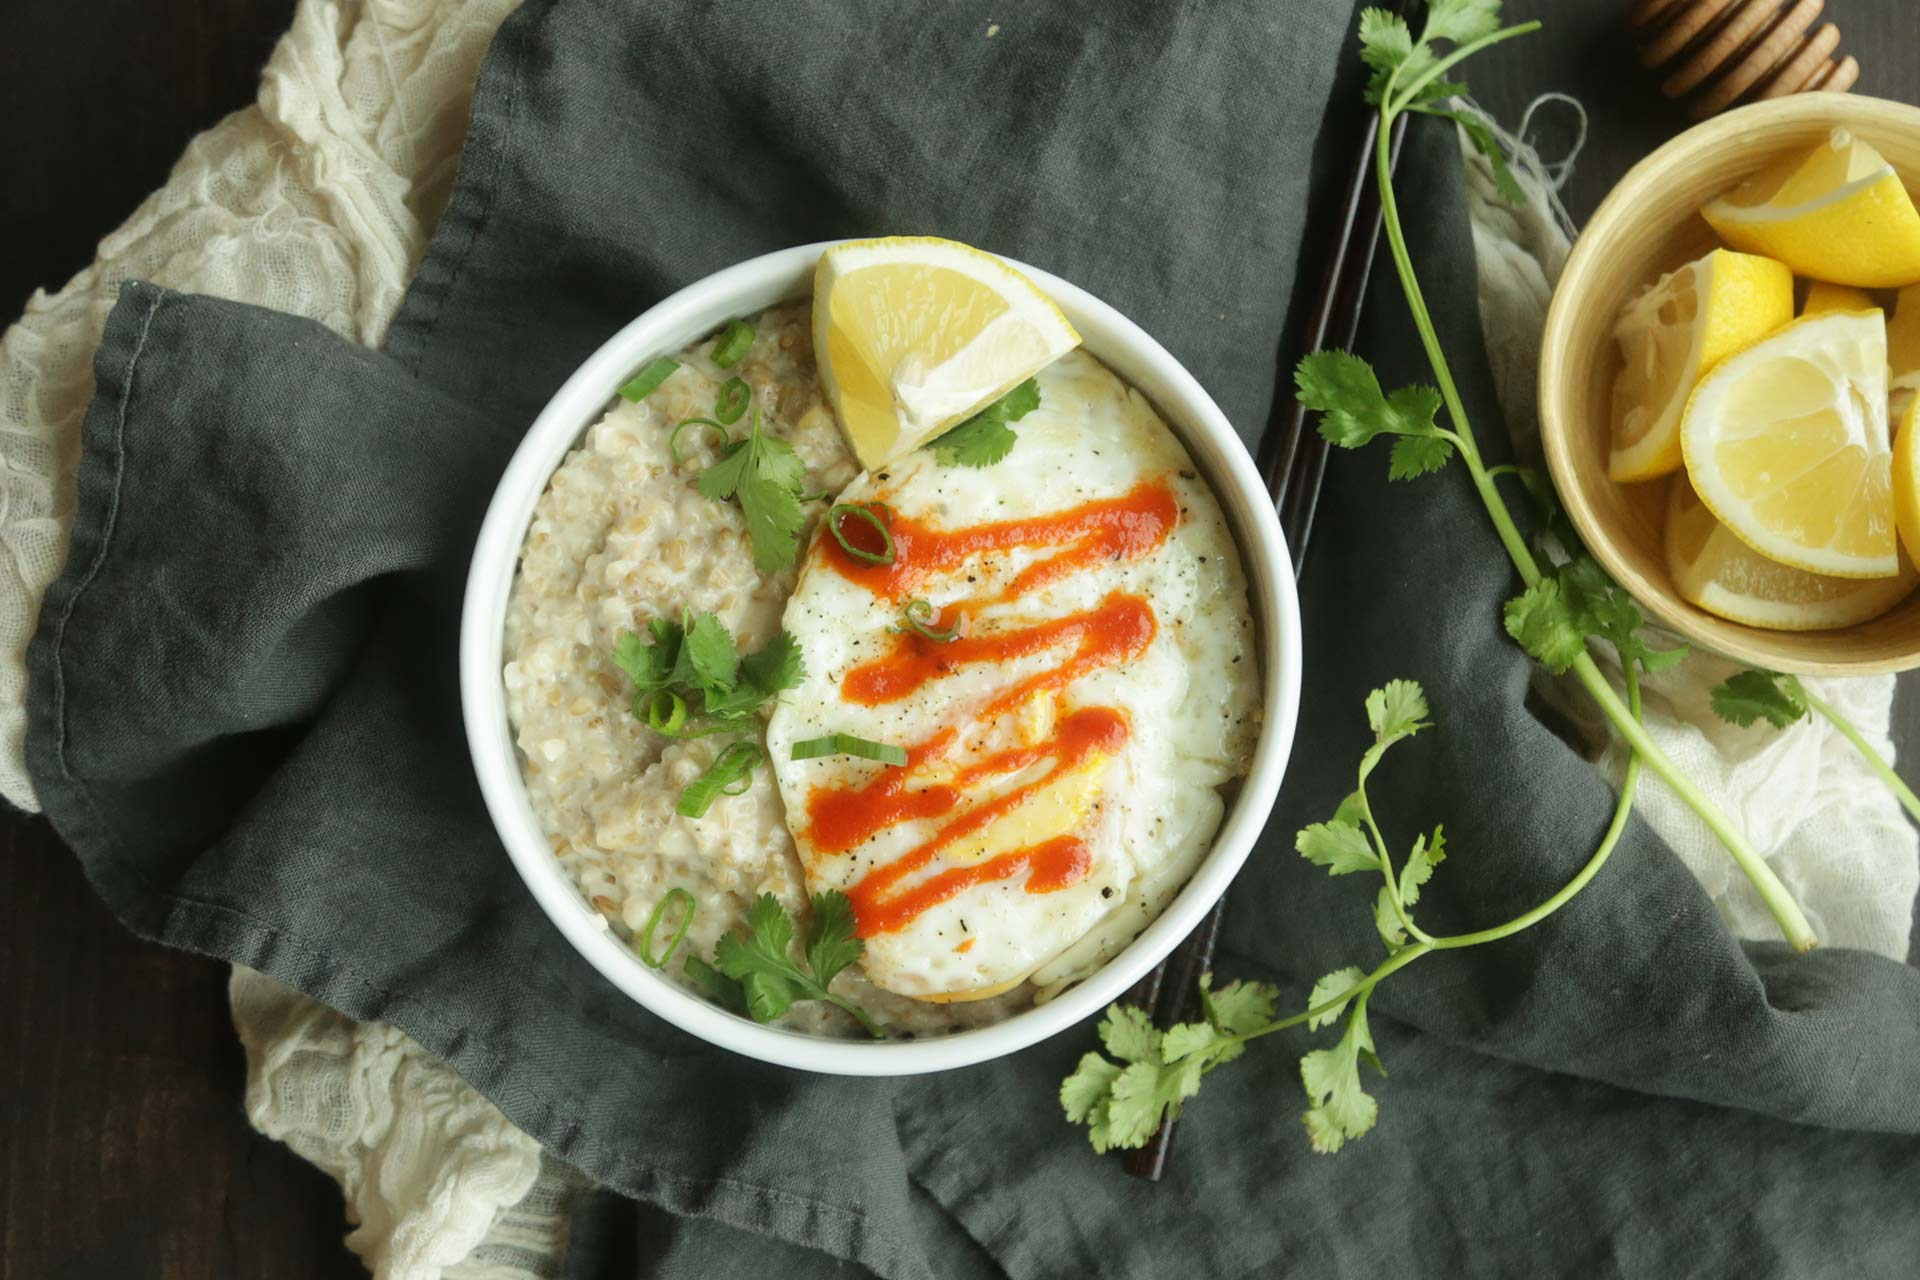 If you are looking to get out of the norm for breakfast and try something a little savory and spicy then this Asian Style Steel Cut Oats Recipe with a Fried Egg and Sriracha is your next stop.  It's easy to make, packed with flavor and loaded with nutrients, good carbs and protein to get you off on the right foot. // @BobsRedMill and @ChefBillyParisi